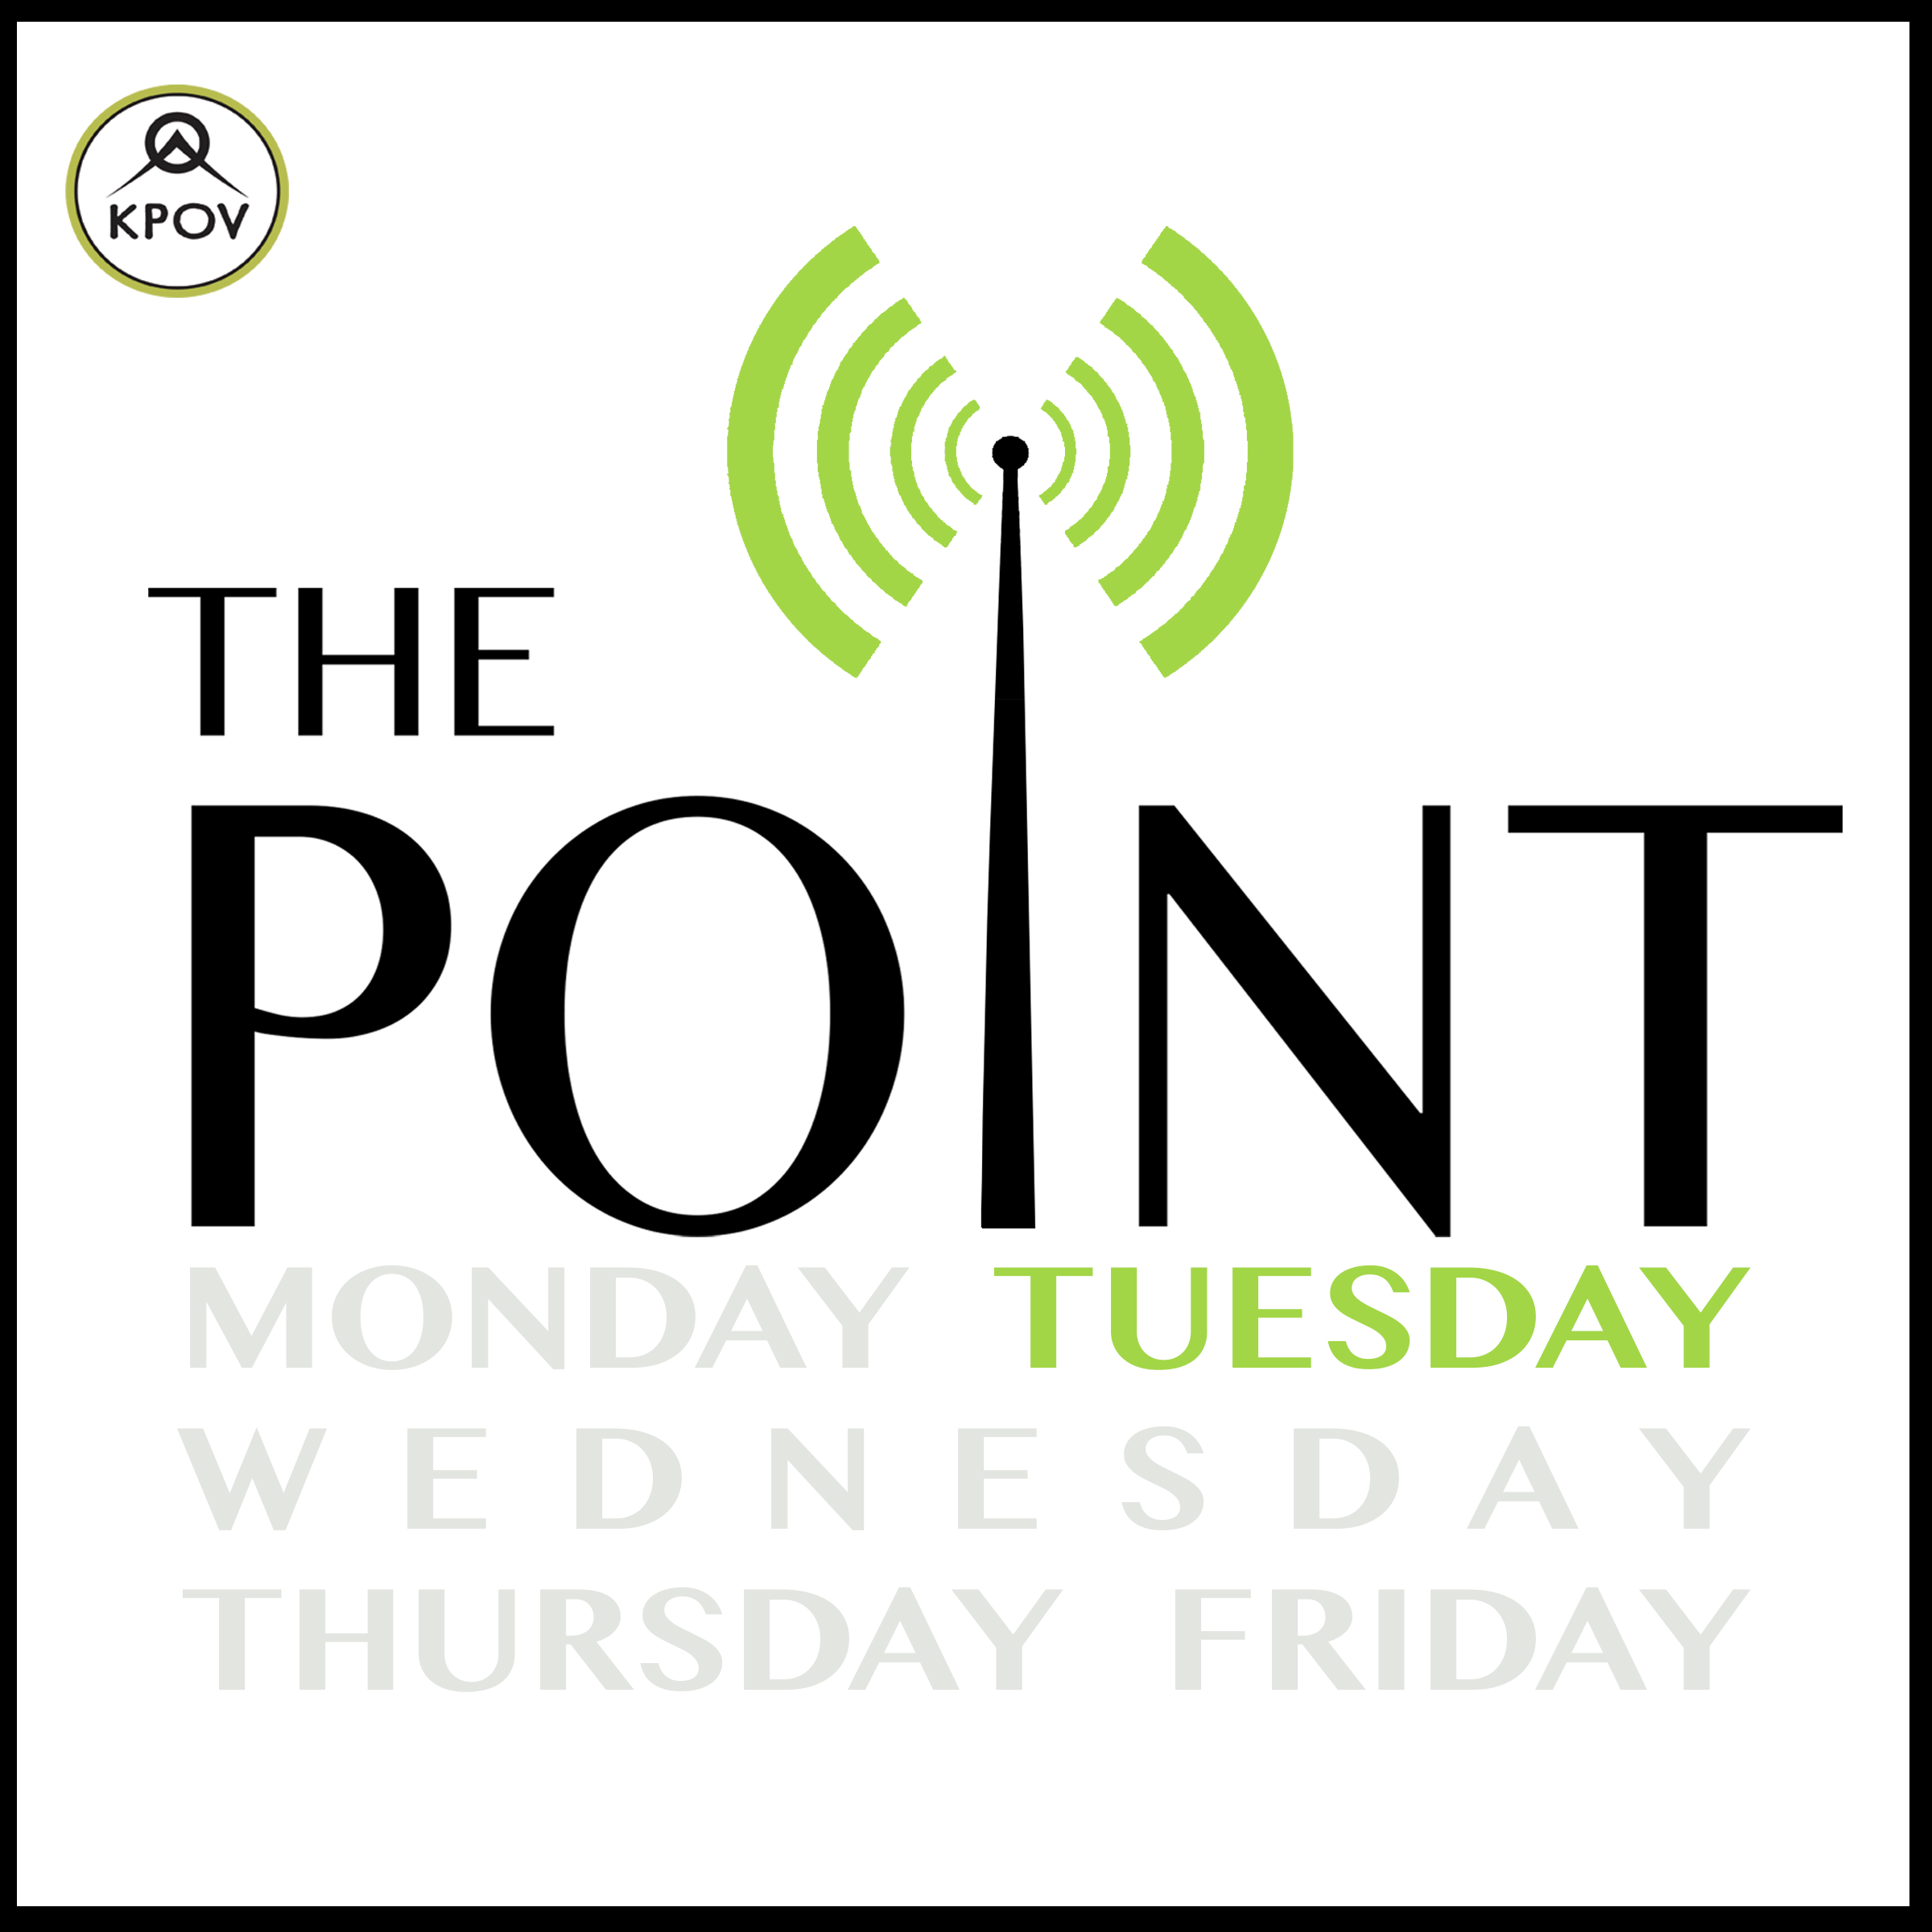 - The Point podcasts feature select segments and interviews from KPOV's weekday community affairs program. The Point is thelocal issues, arts, stories, and culture show for Bend, Redmond, Sisters, Prineville, everywhere in between and beyond – produced entirely by our Central Oregon community and KPOV.The Tuesday Point is hosted by Bruce Morris and Steve Schaffer.